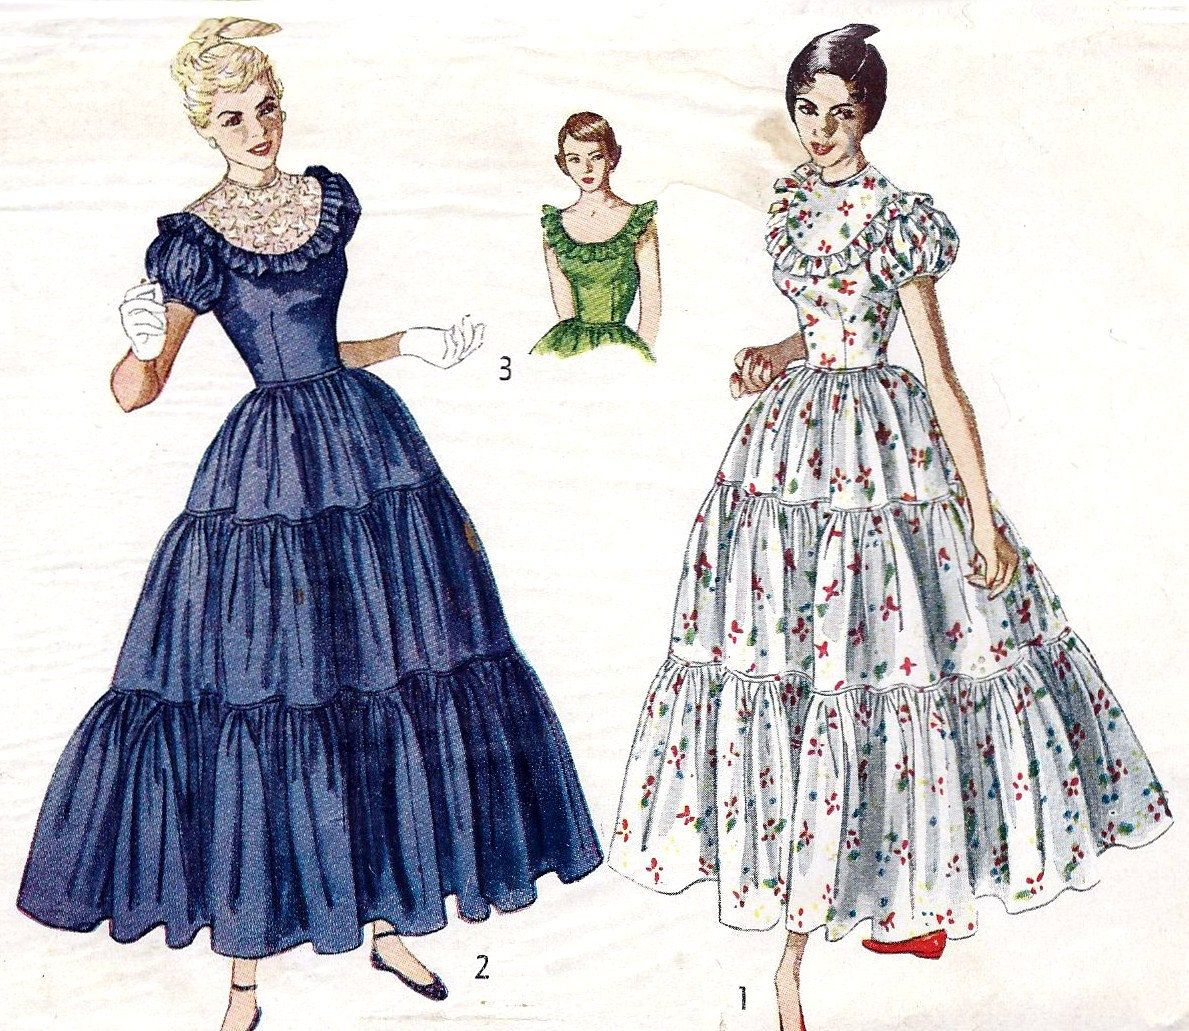 1940s Prom Dress Evening Gown Ball Gown Vintage Sewing Pattern Simplicity 3040 Bust Simplicity Patterns Dresses Evening Dress Patterns Tiered Dress Pattern [ 1031 x 1189 Pixel ]